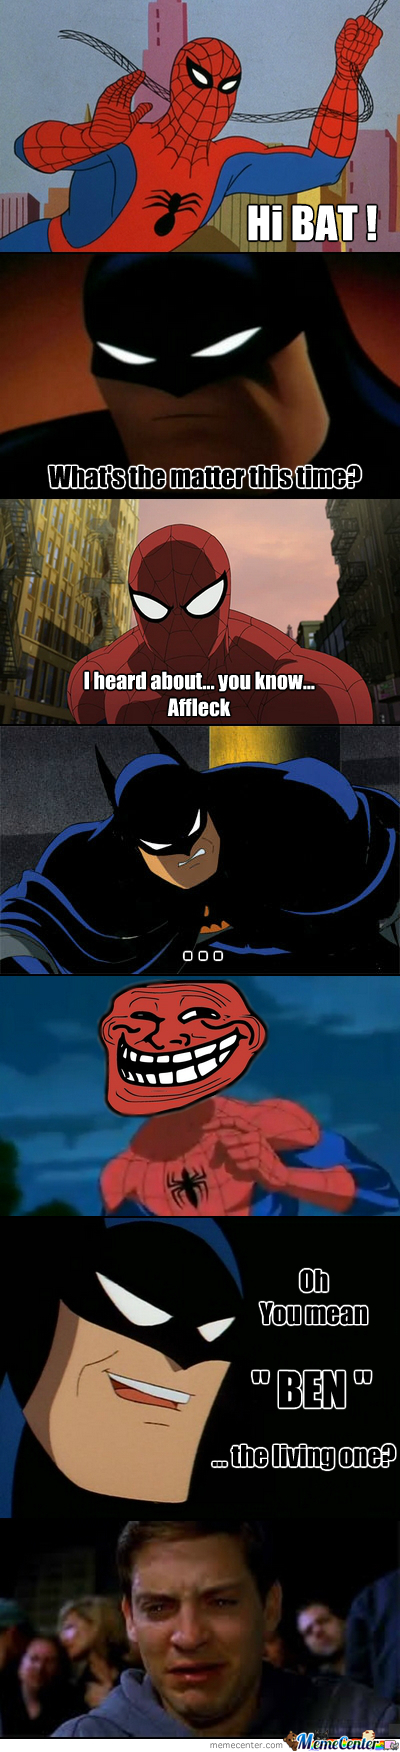 Counter-Troll : Level Batman